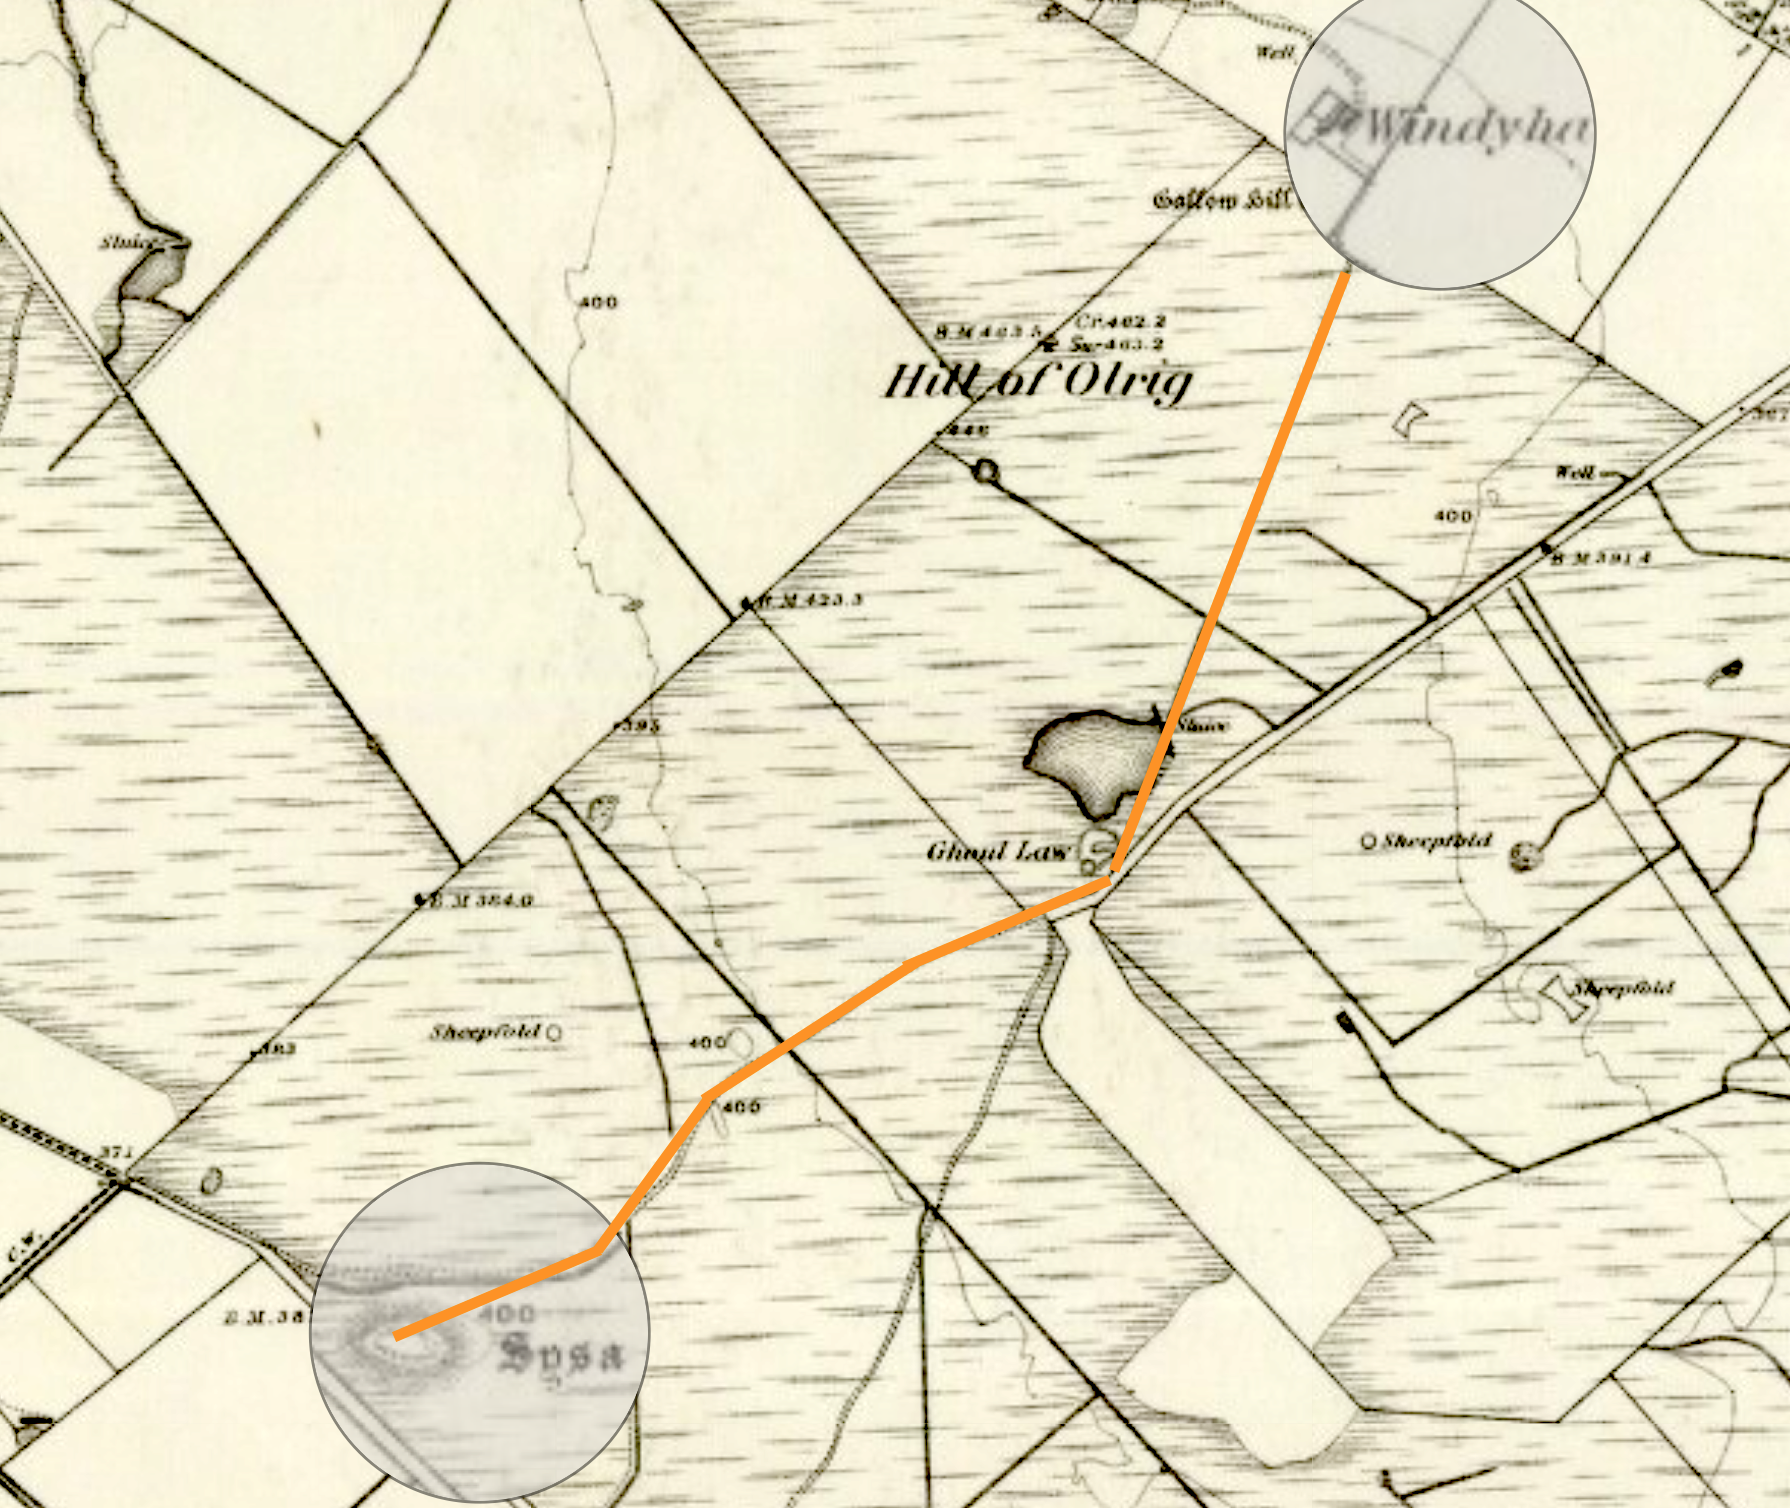 The orange line follows the old hill road which Peter walked from his farm house, Windy Ha', to Sysa Hillock.